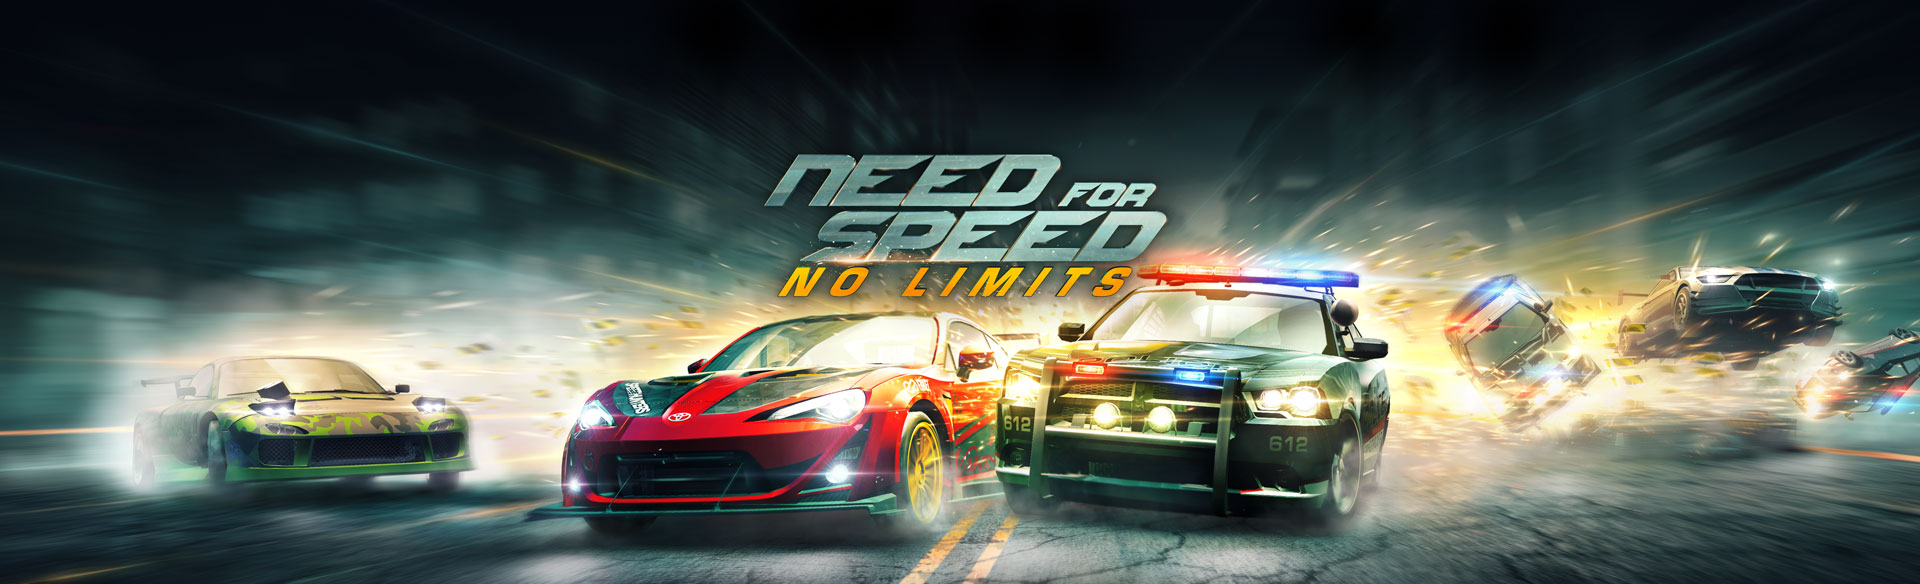 need for speed no limits app store